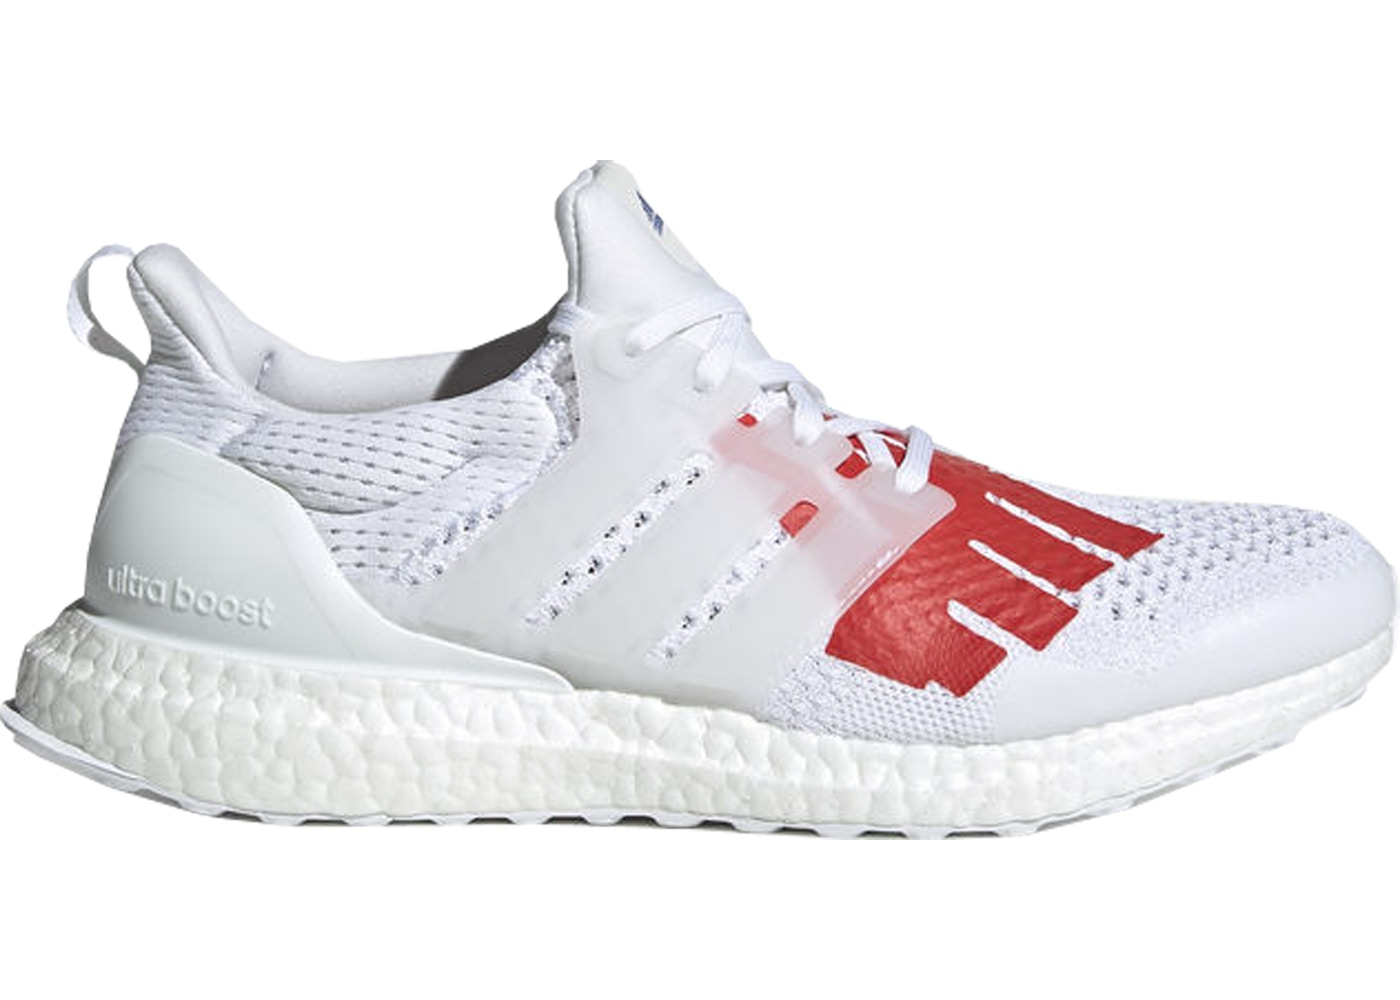 bc165fd8f adidas Ultra Boost Shoes - New Lowest Asks